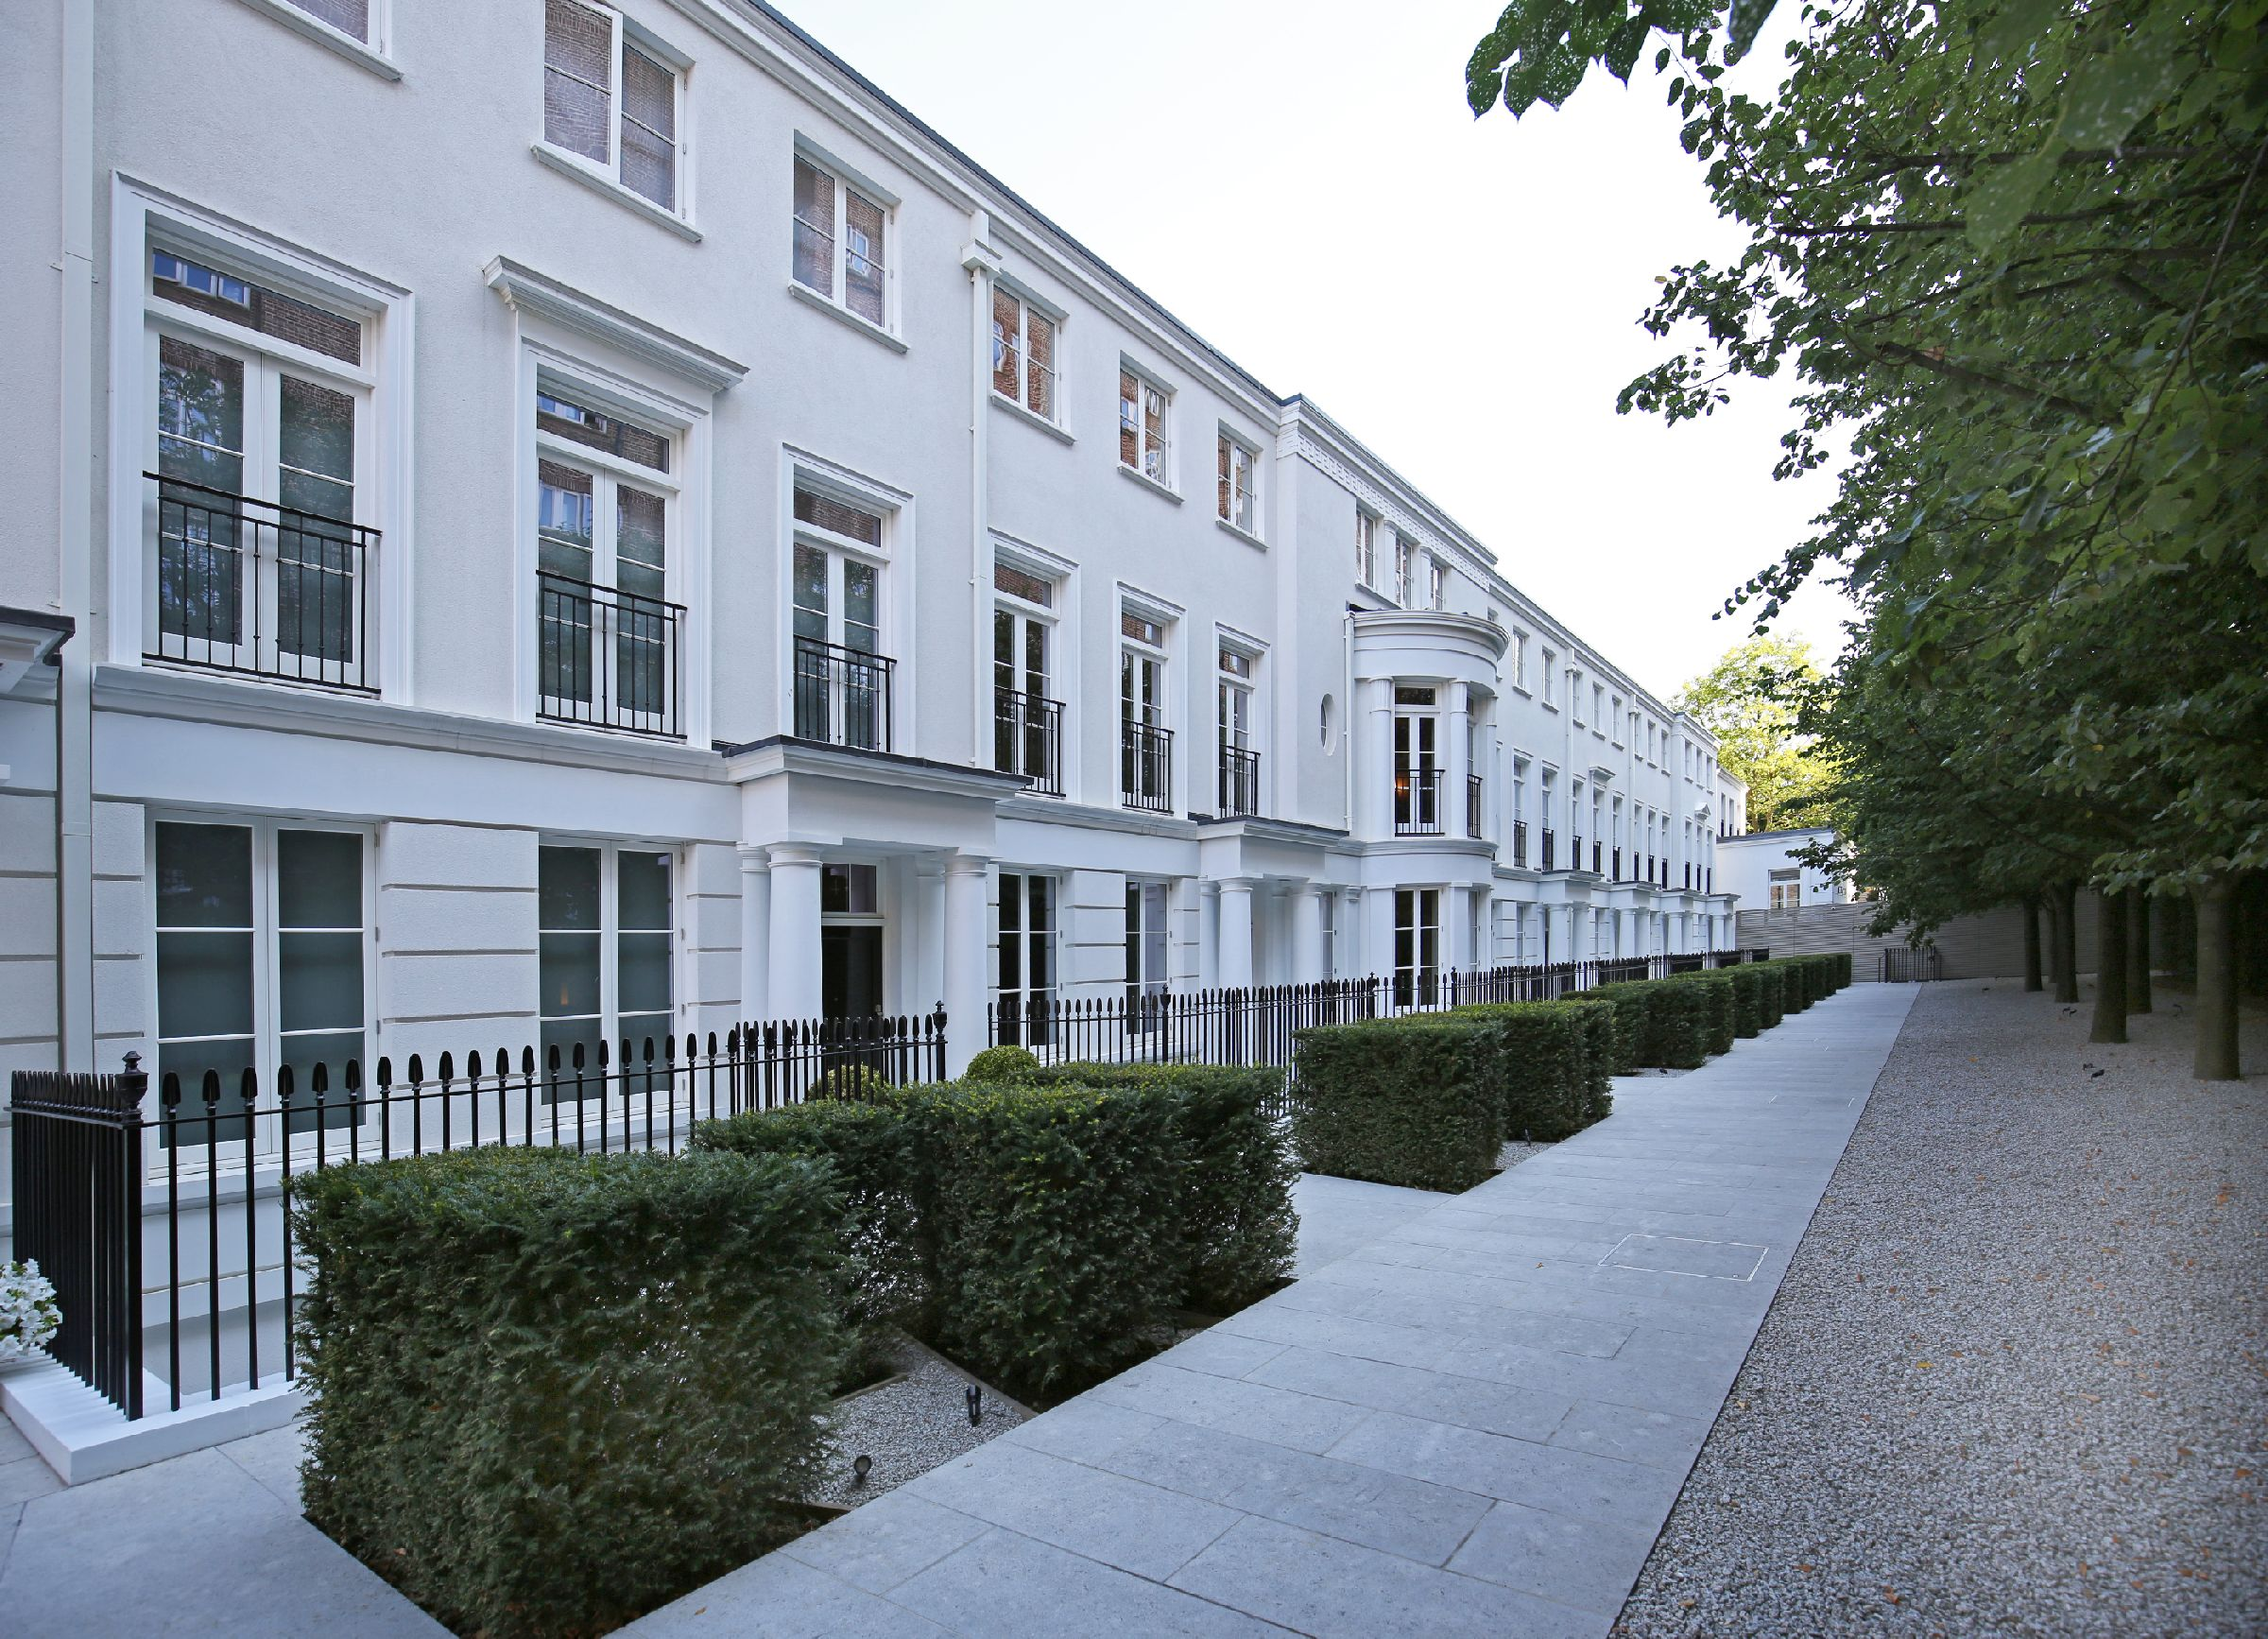 STO SOLUTIONS HELP CREATE STUNNING NEW ST JOHN'S WOOD RESIDENTIAL DEVELOPMENT